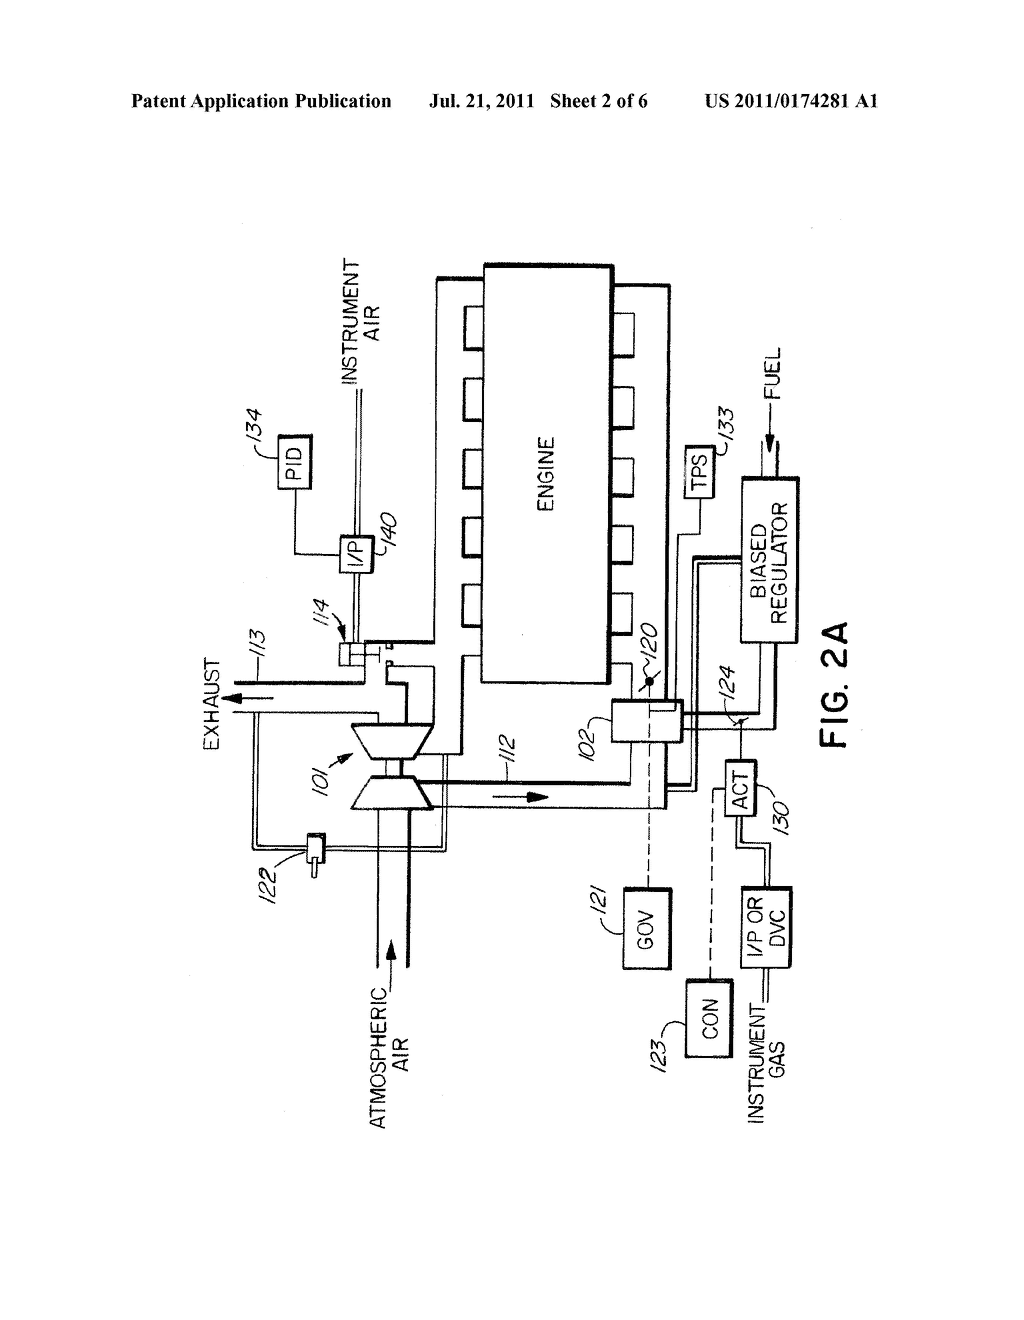 Epub Download Natural Gas Engine Diagram